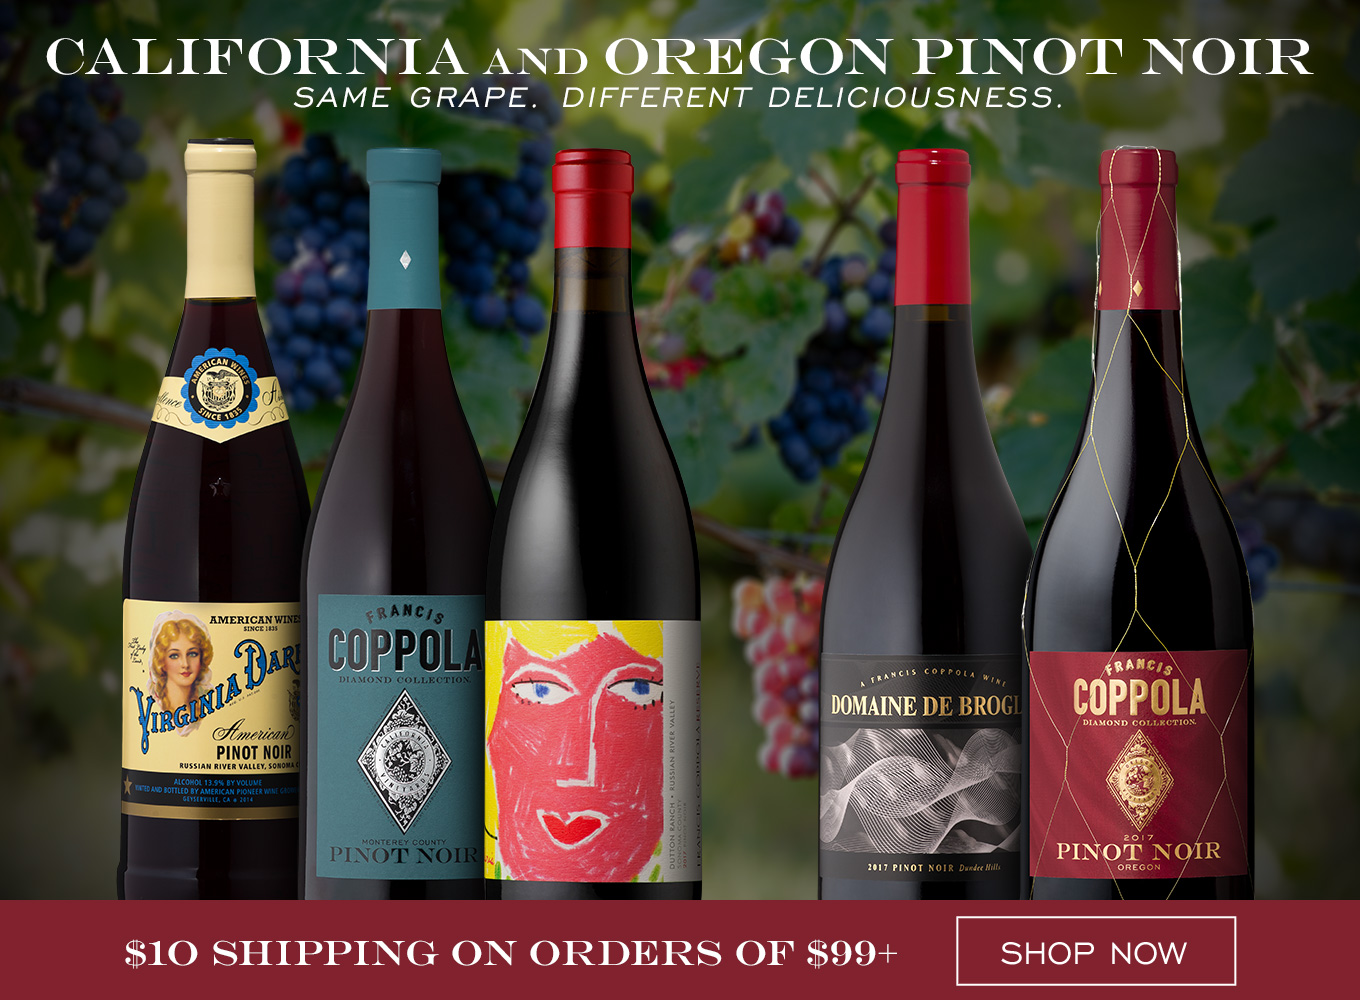 California and Oregon Pinot Noir: Same Grape. Different Deliciousness.